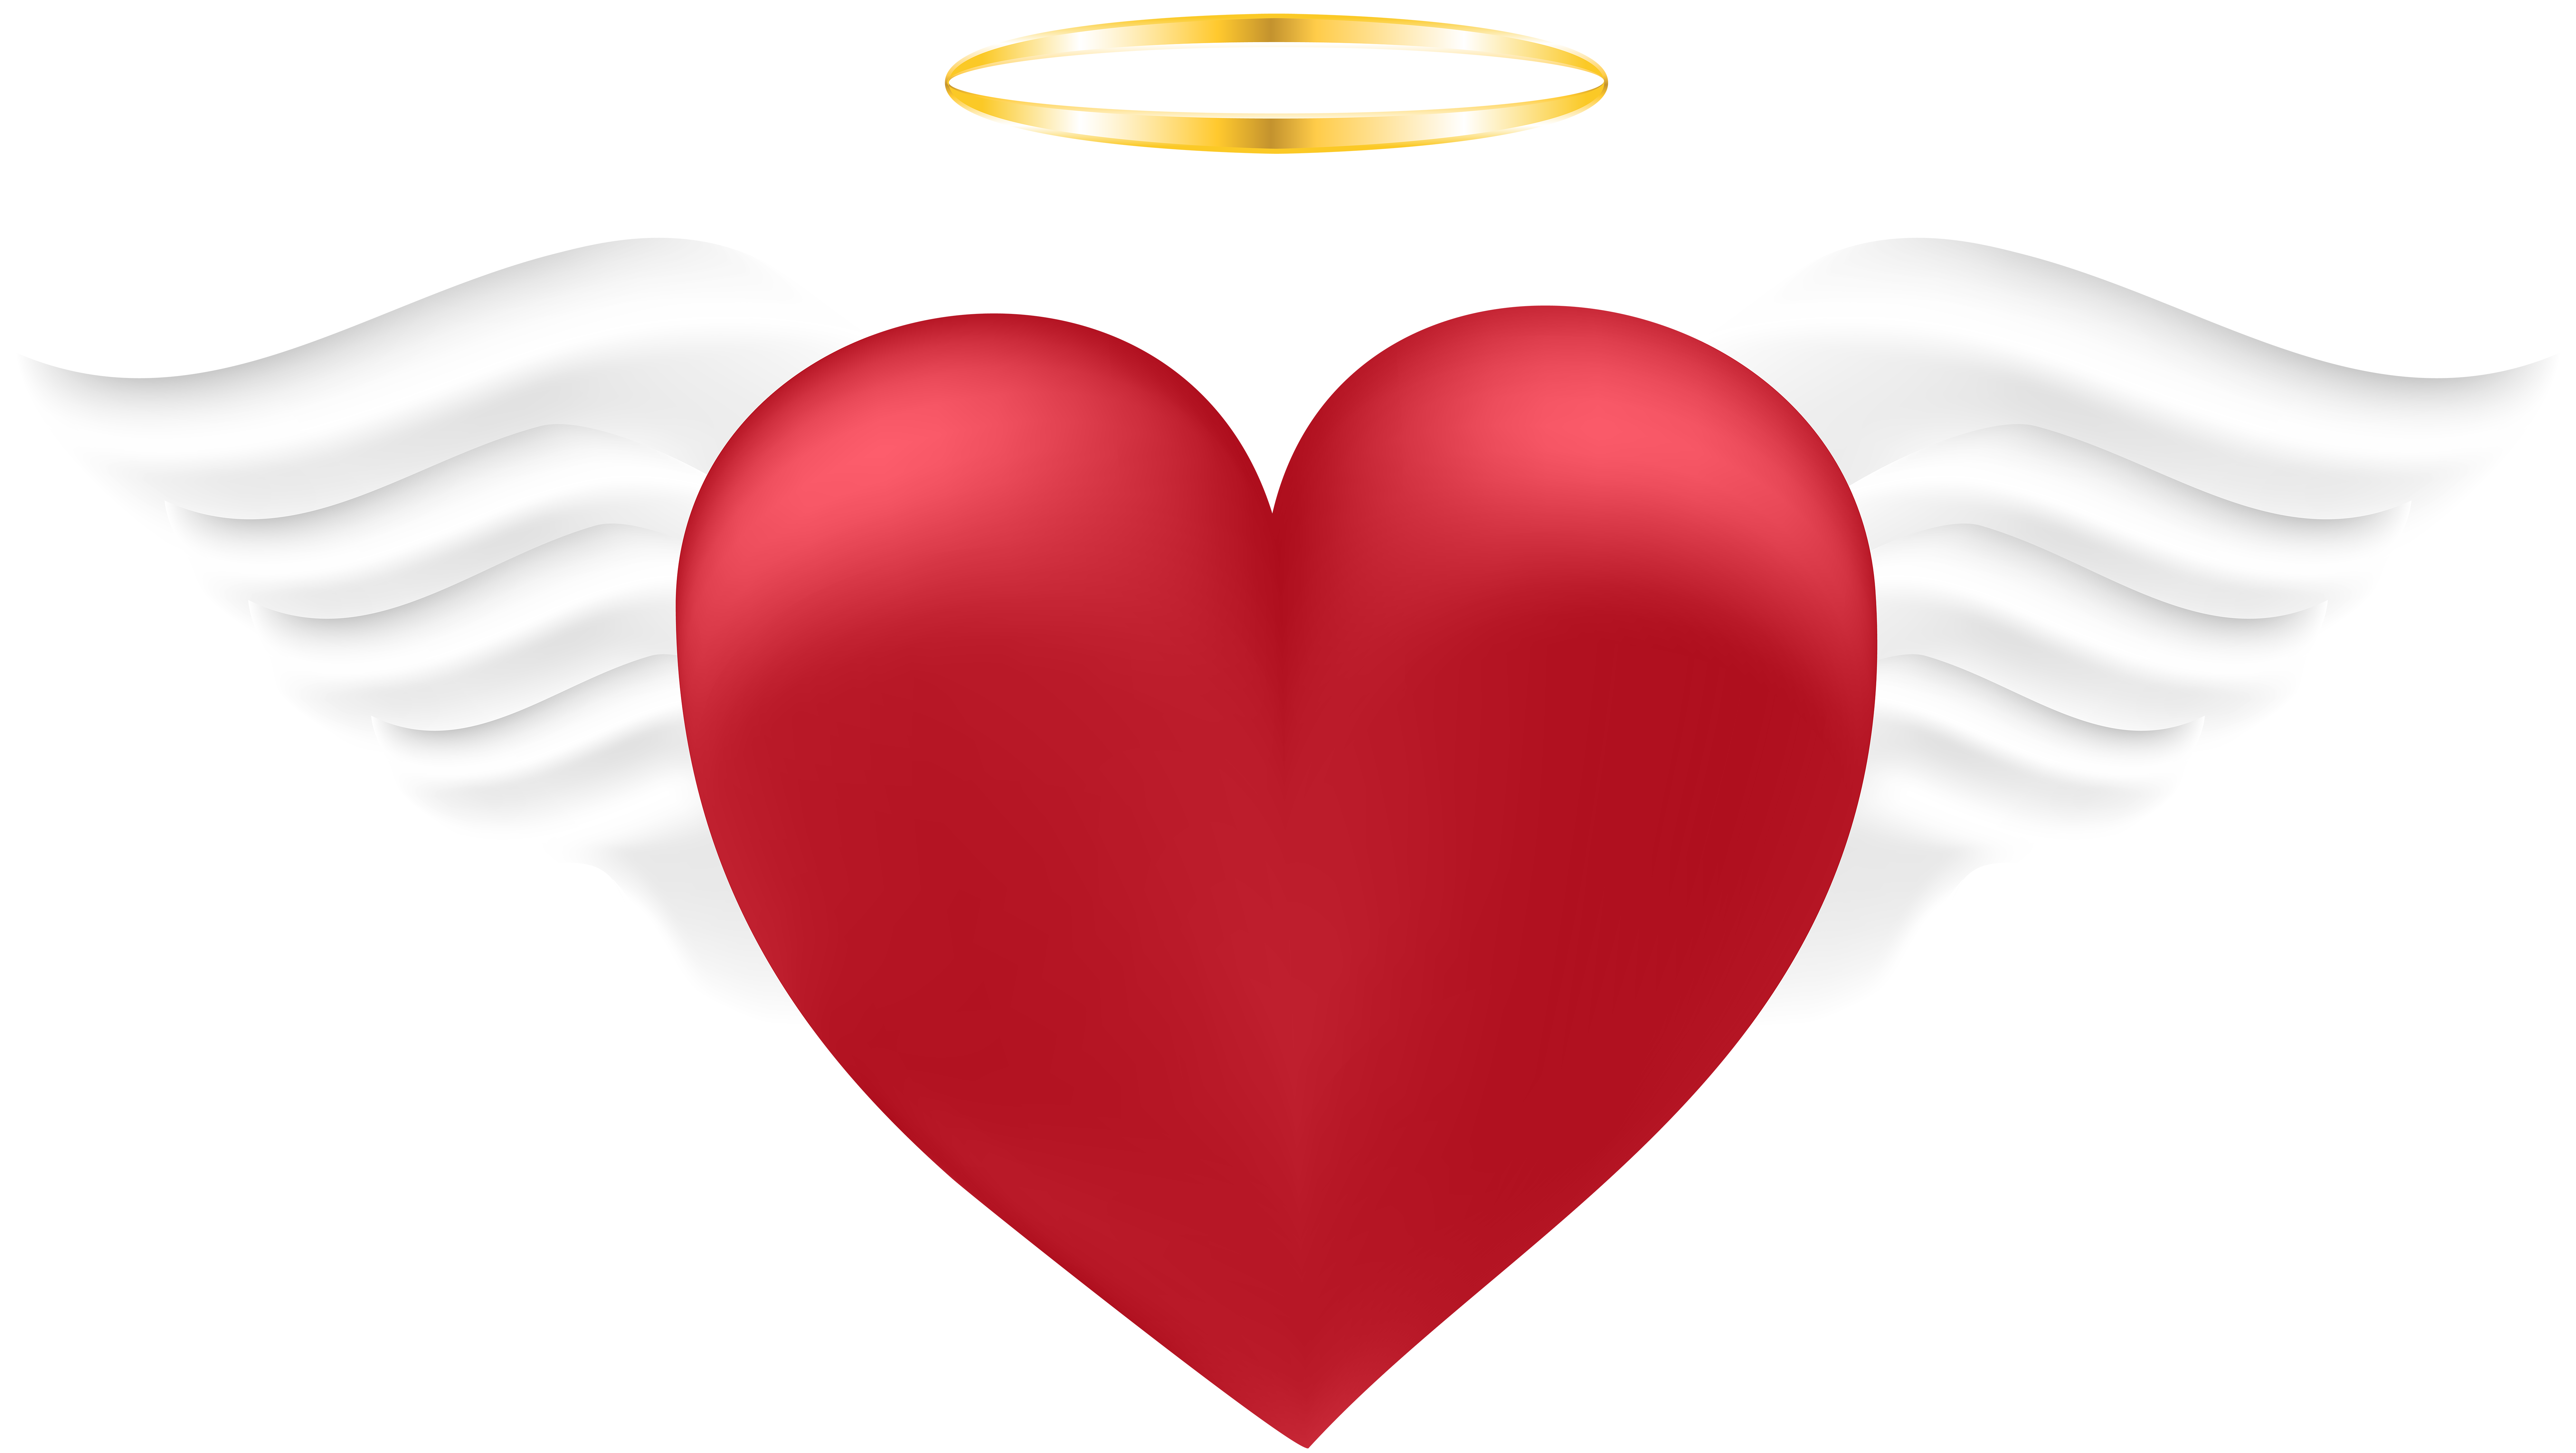 Angel heart clipart vector royalty free library Angel Heart Transparent PNG Image   Gallery Yopriceville - High ... vector royalty free library